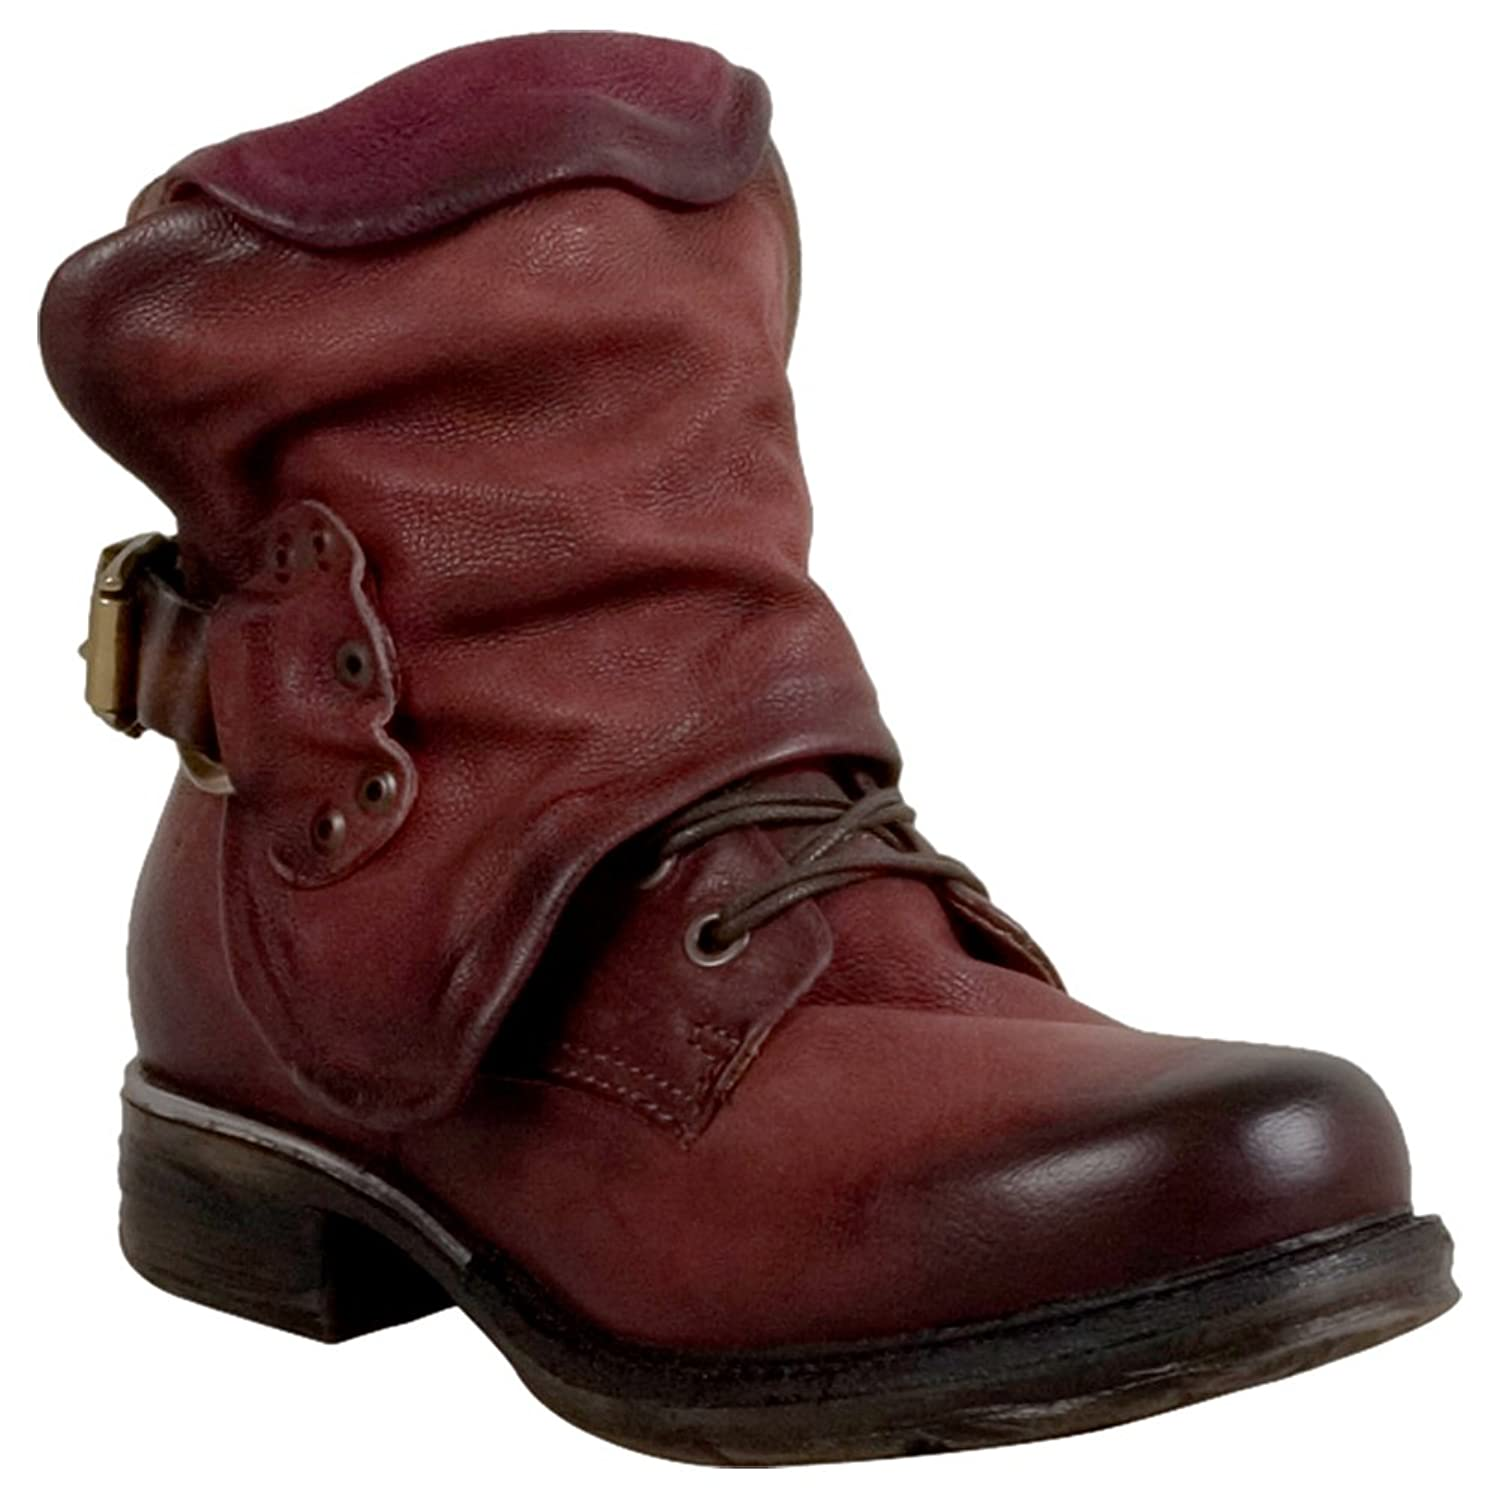 A.S.98 Simon Women's Motorcycle Boot Wine